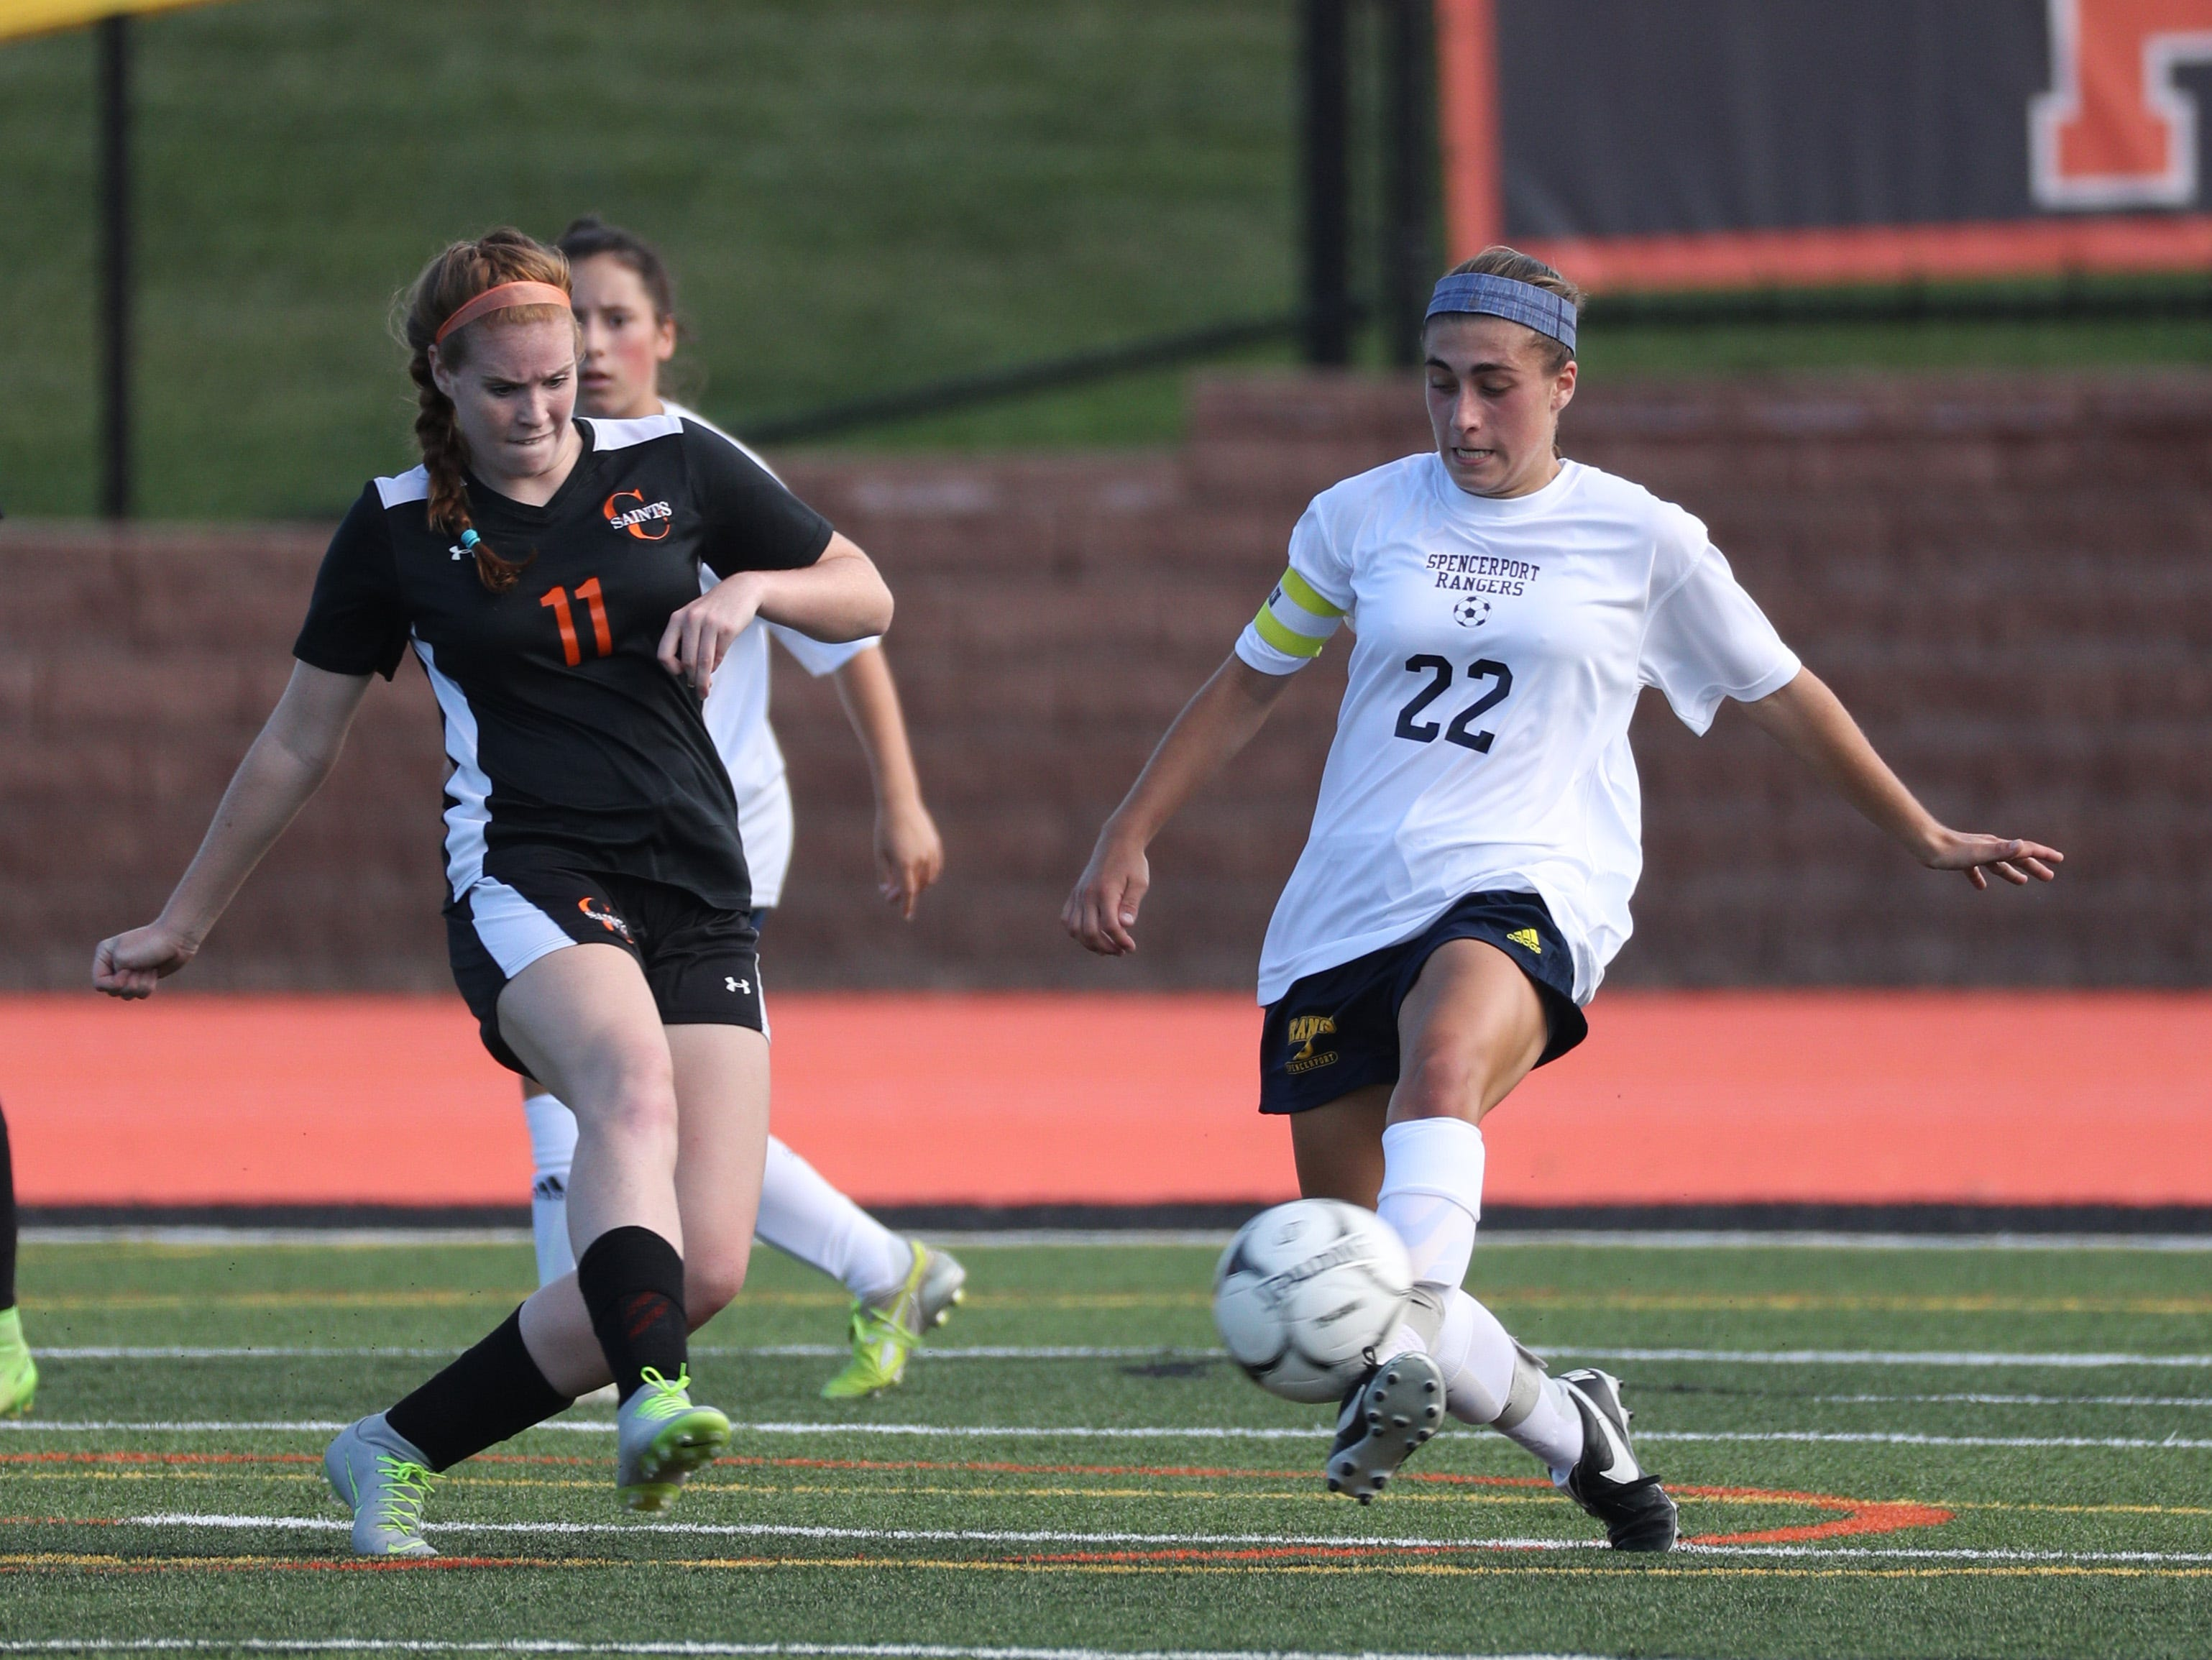 Spencerport's Olivia Wall pressures Churchville-Chili's Courtney Curley.